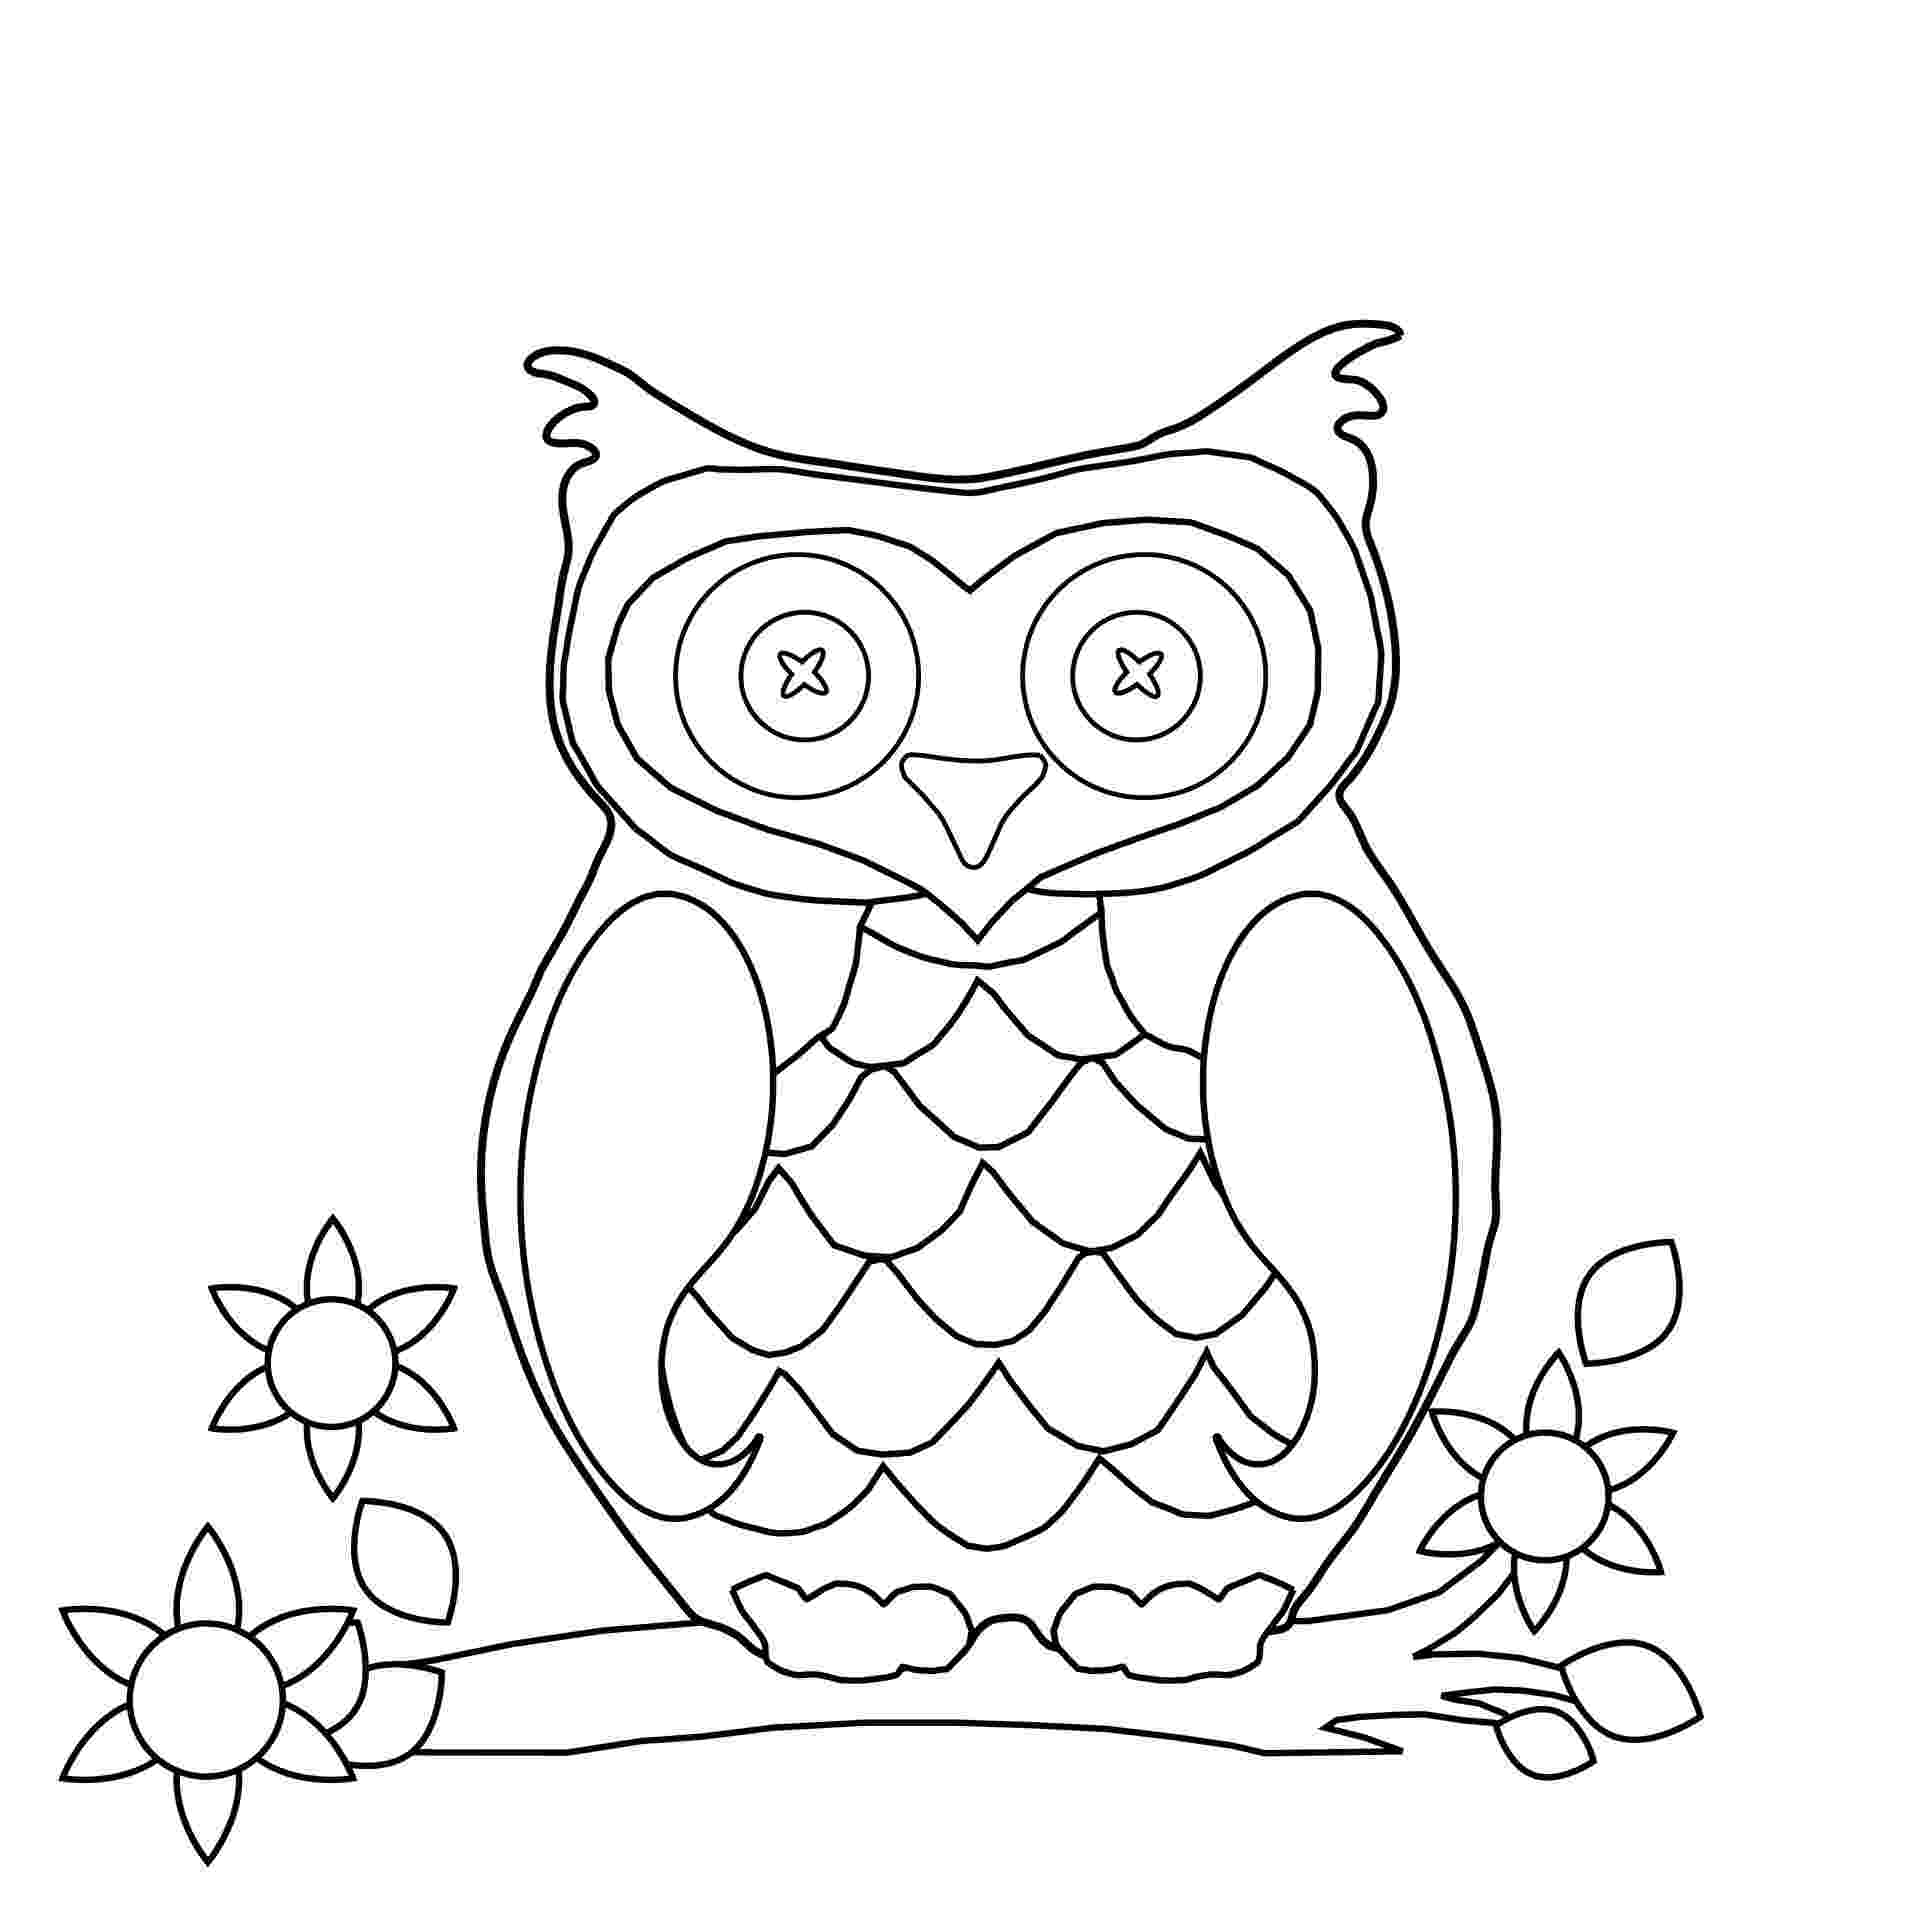 owl coloring sheet 30 stunning owl pictures that will inspire you themes sheet owl coloring